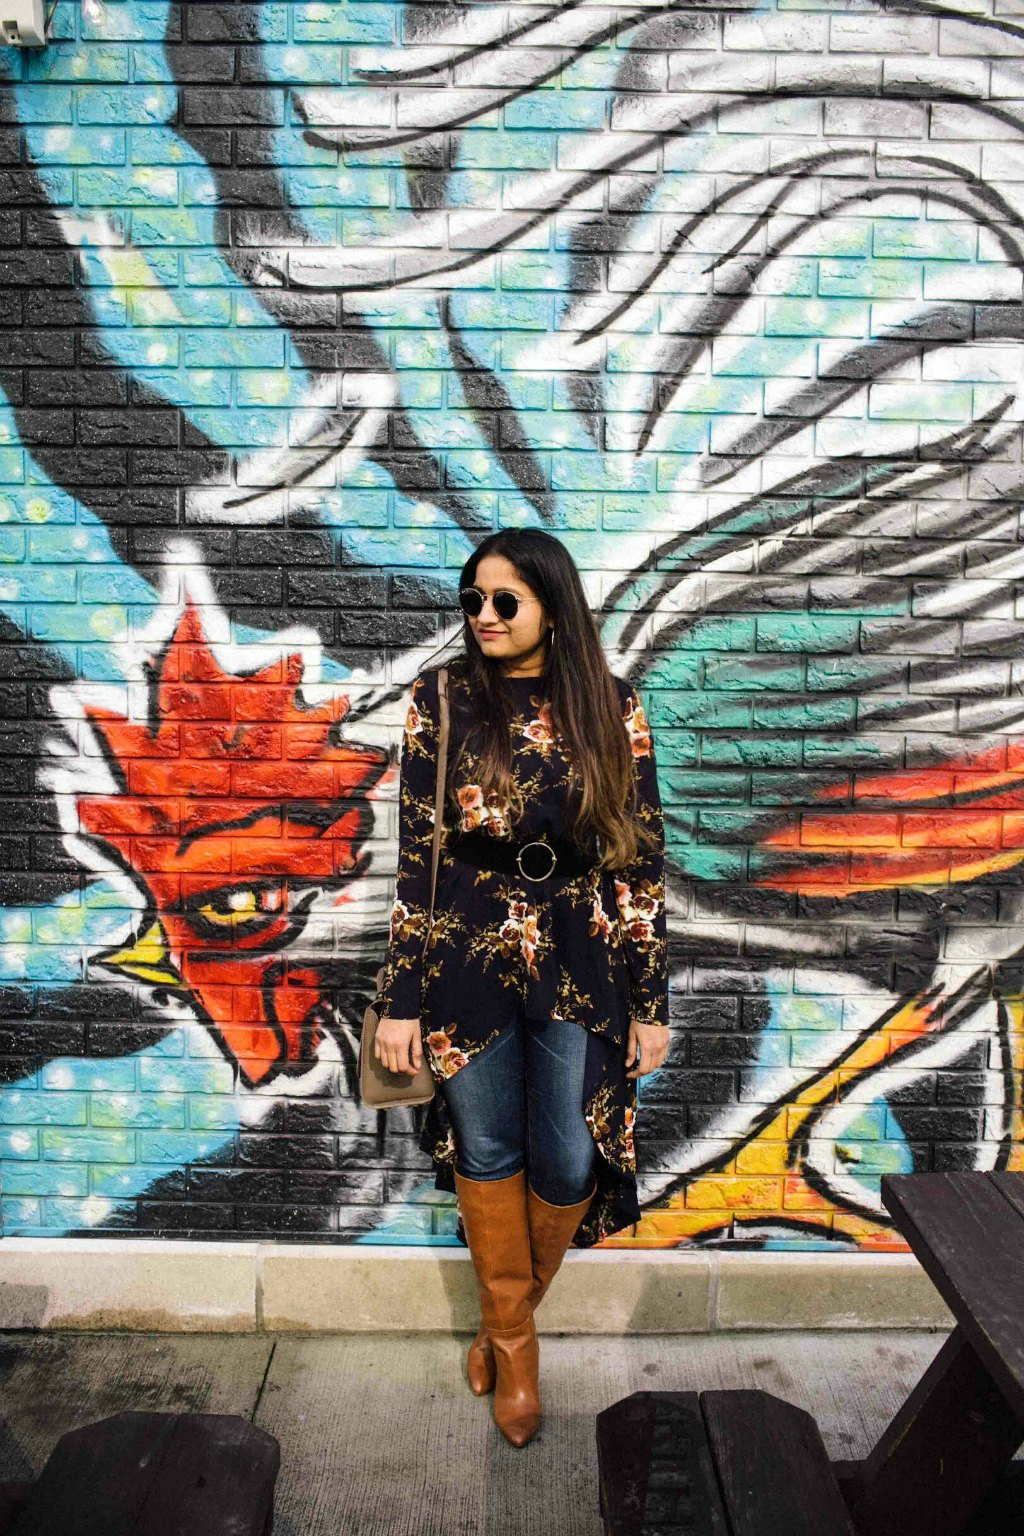 Lifestyle BLog Dreaming Loud sharing how to wear tunic top with skinny jeans and knee high boots for spring | SheIn High Low Tunic Top styled by popular Ohio modest fashion blogger, Dreaming Loud